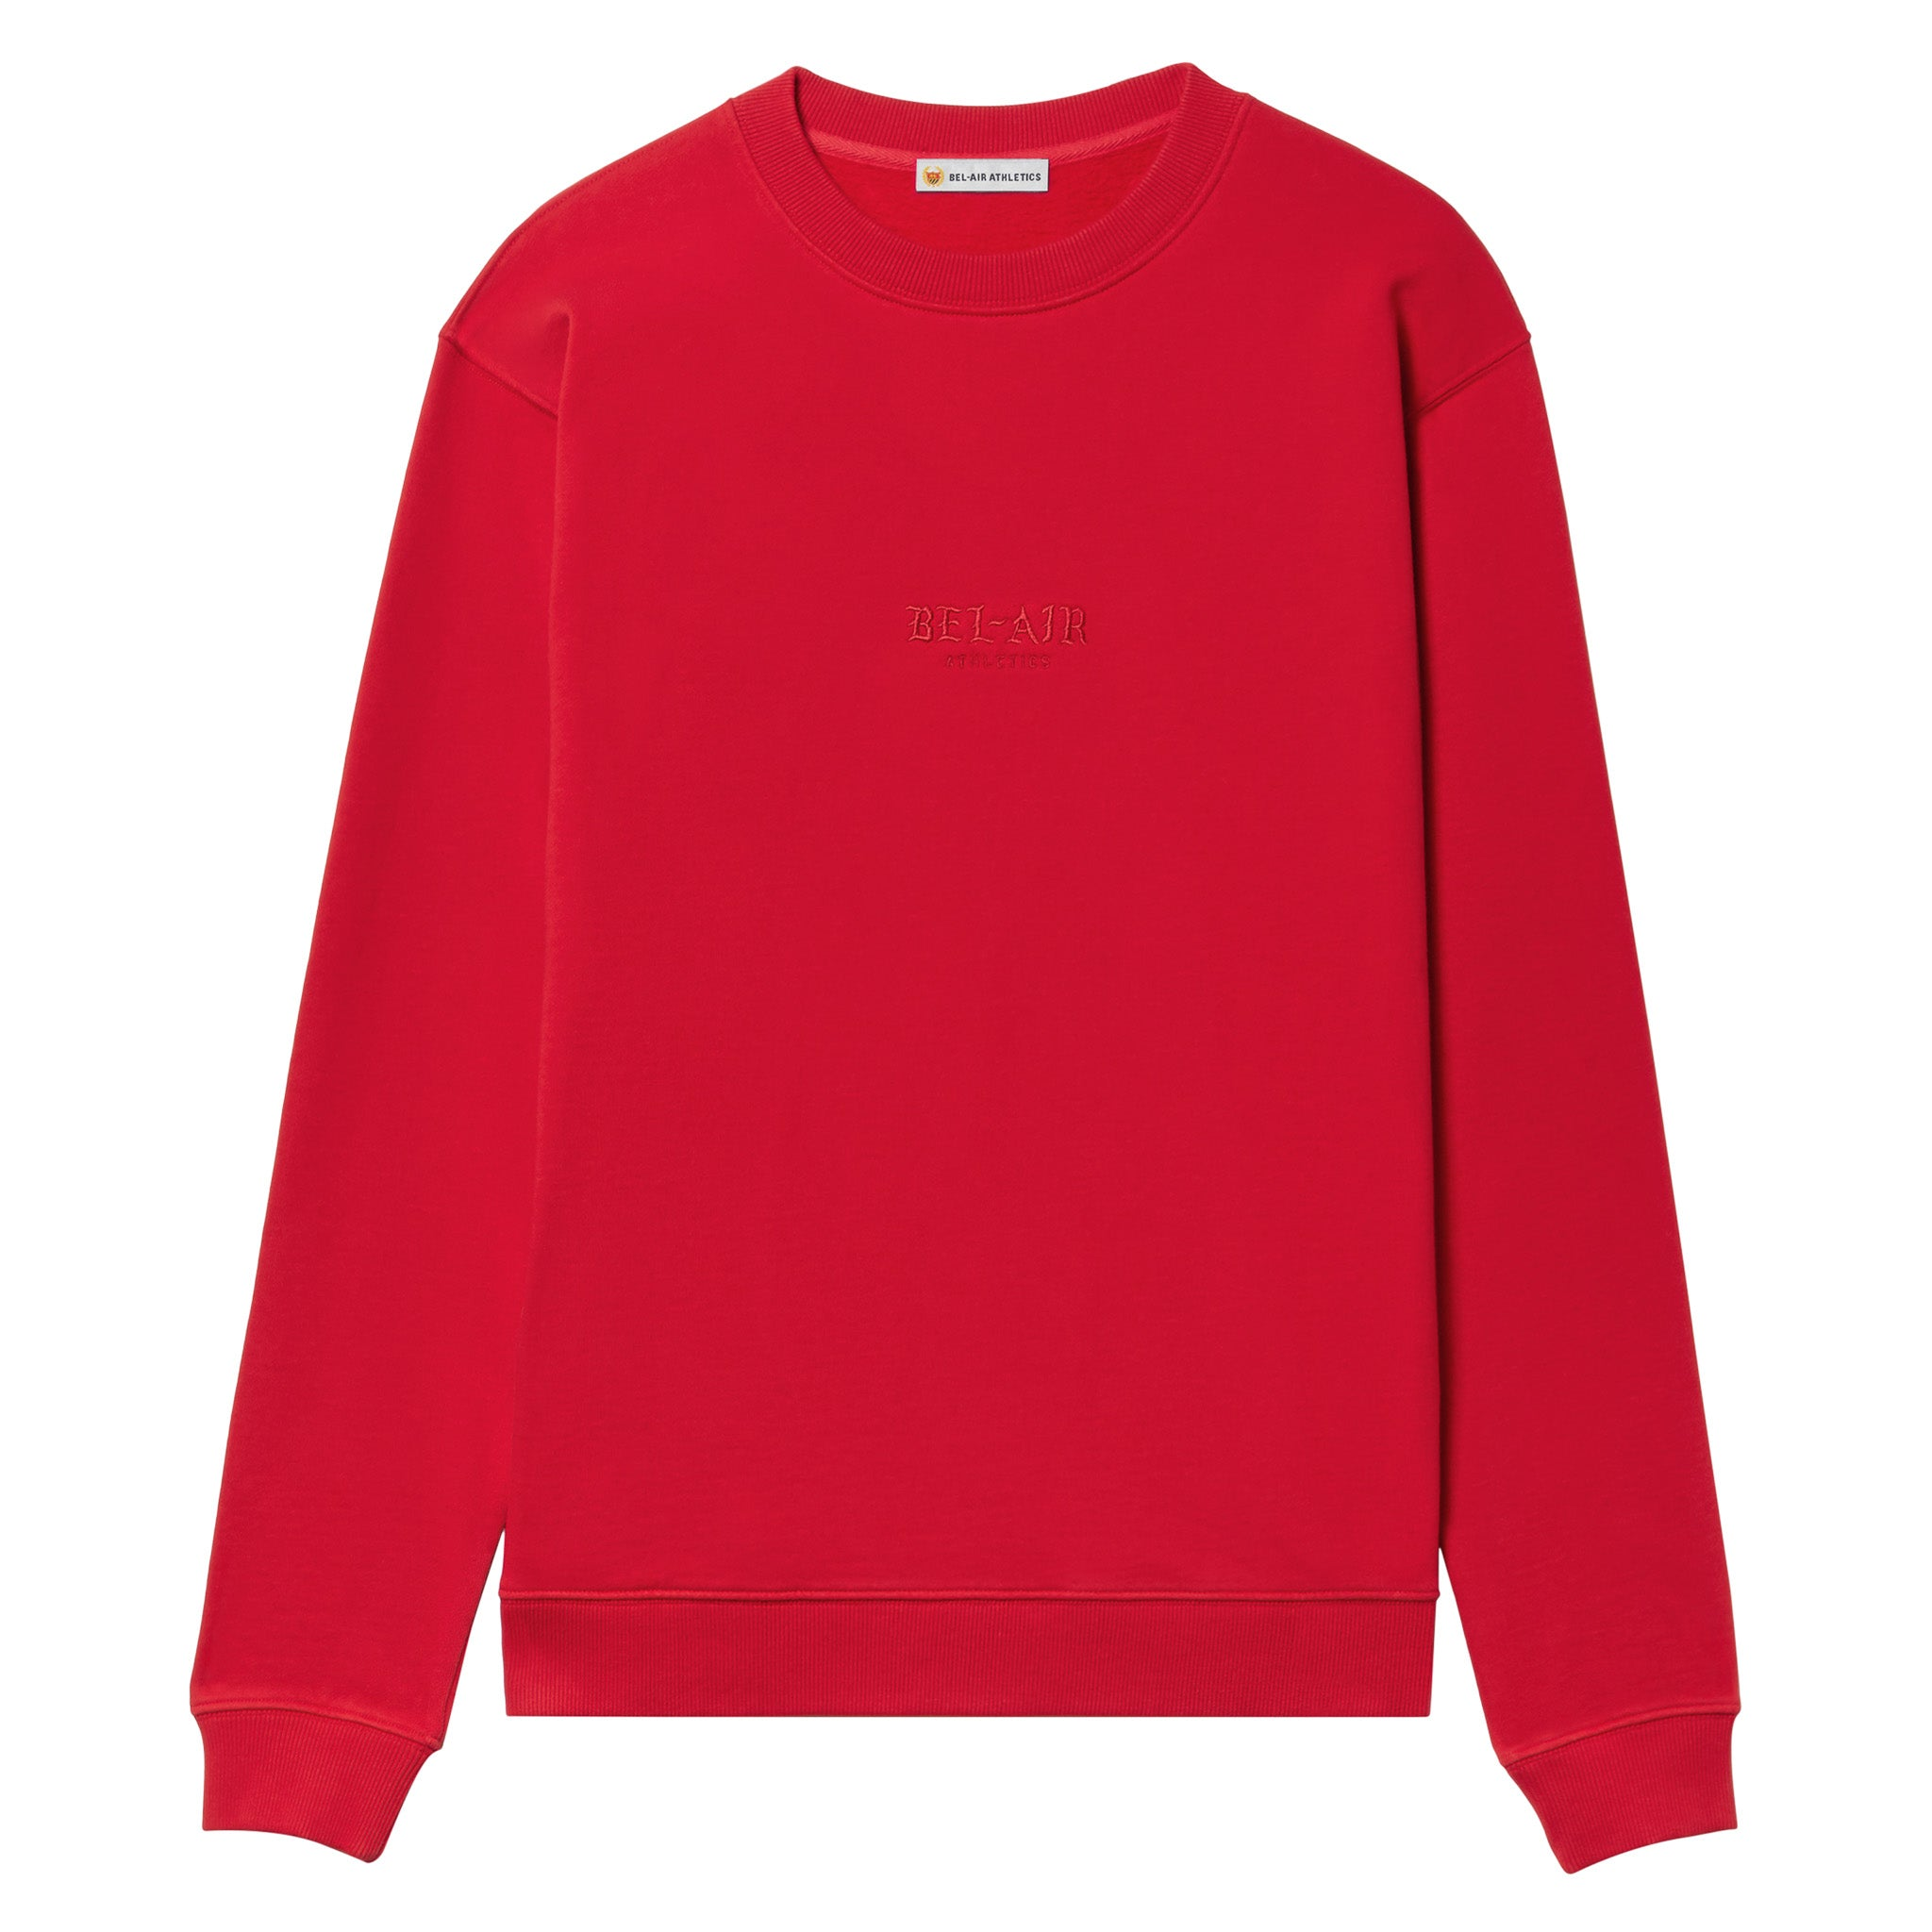 Gothic Font Crew Neck - ACADEMY RED